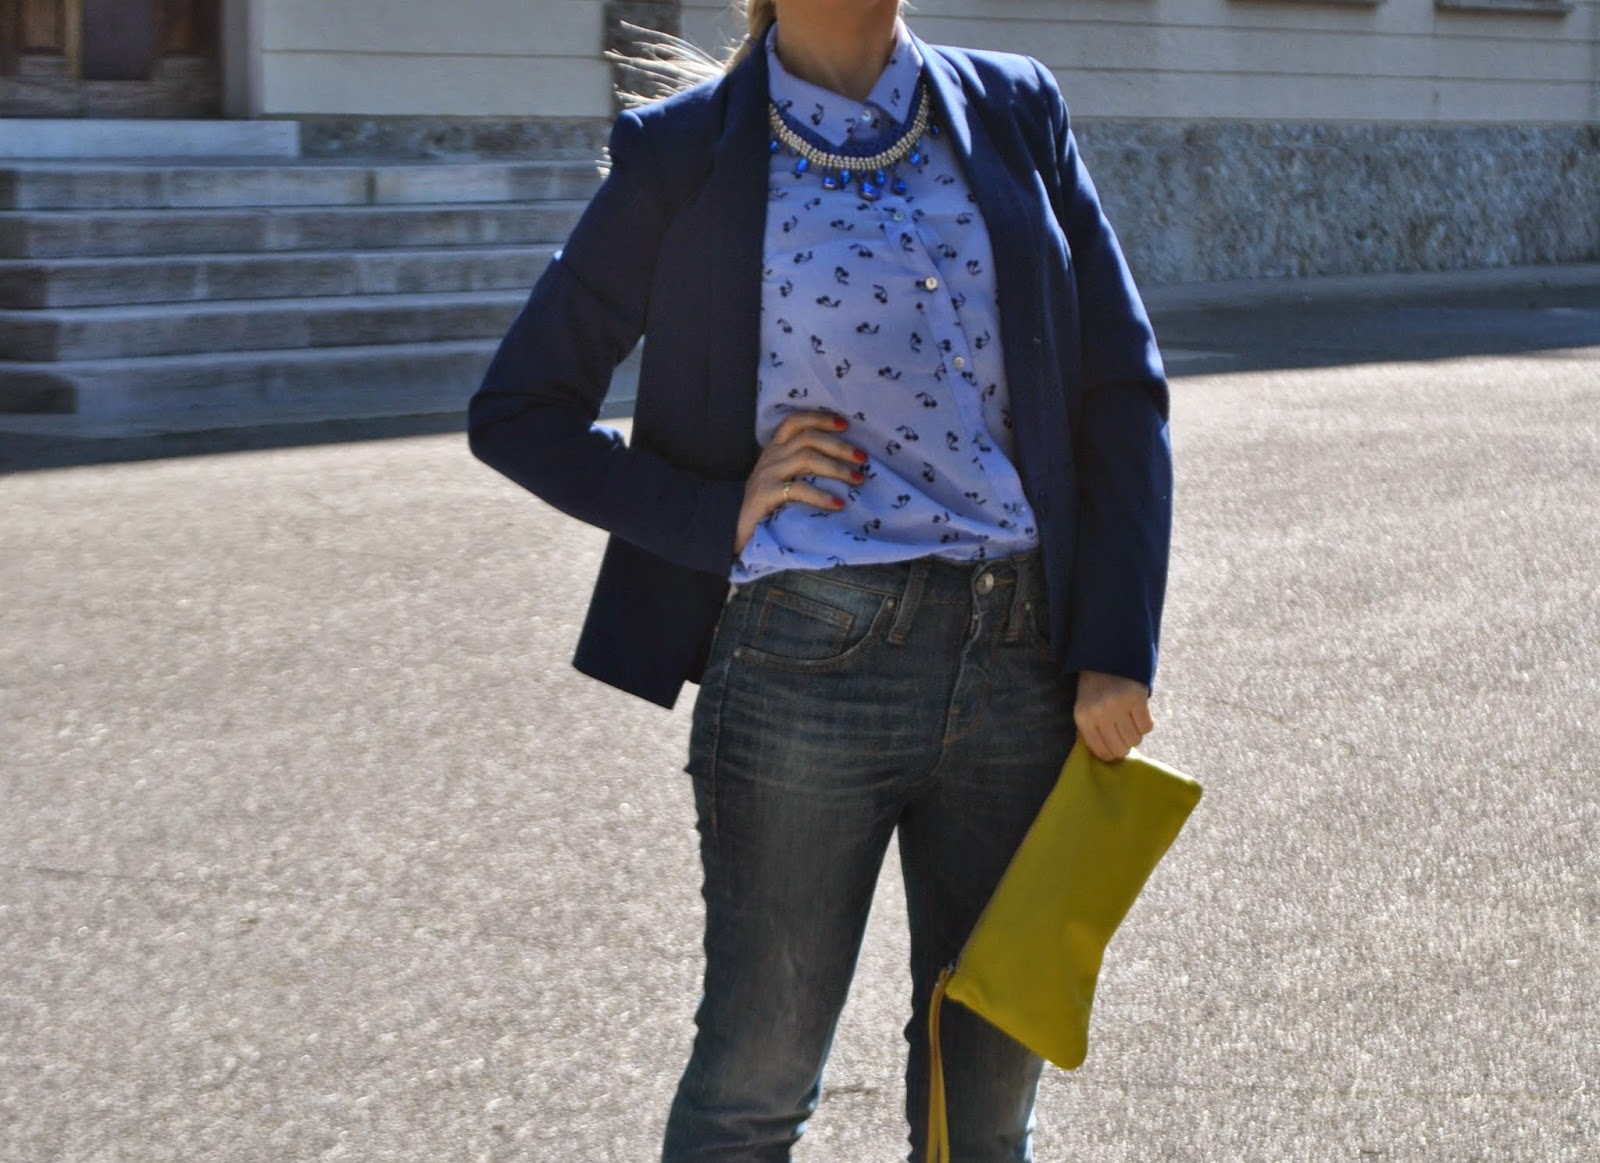 camicia stampa ciliegie outfit blu outfit giacca blu outfit camicia stampa ciliegie camicia pull&bears outfit stringate maschili mariafelicia magno colorblock by felym mariafelicia magno fashion blogger outfit giacca blu come abbinare il blu outfit borsa gialla outfit scarpe blu come abbinare il giallo abbinamenti giallo blu abbinamenti blu outfit aprile 2015 outfit  outfit primaverili casual outfit donna primaverili outfit casual donna spring outfits outfit blue how to wear blue blue blazer yellow bag fashion bloggers italy girl blonde hair blonde girls braids collana pietre blu majique fornarina massimiliano incas